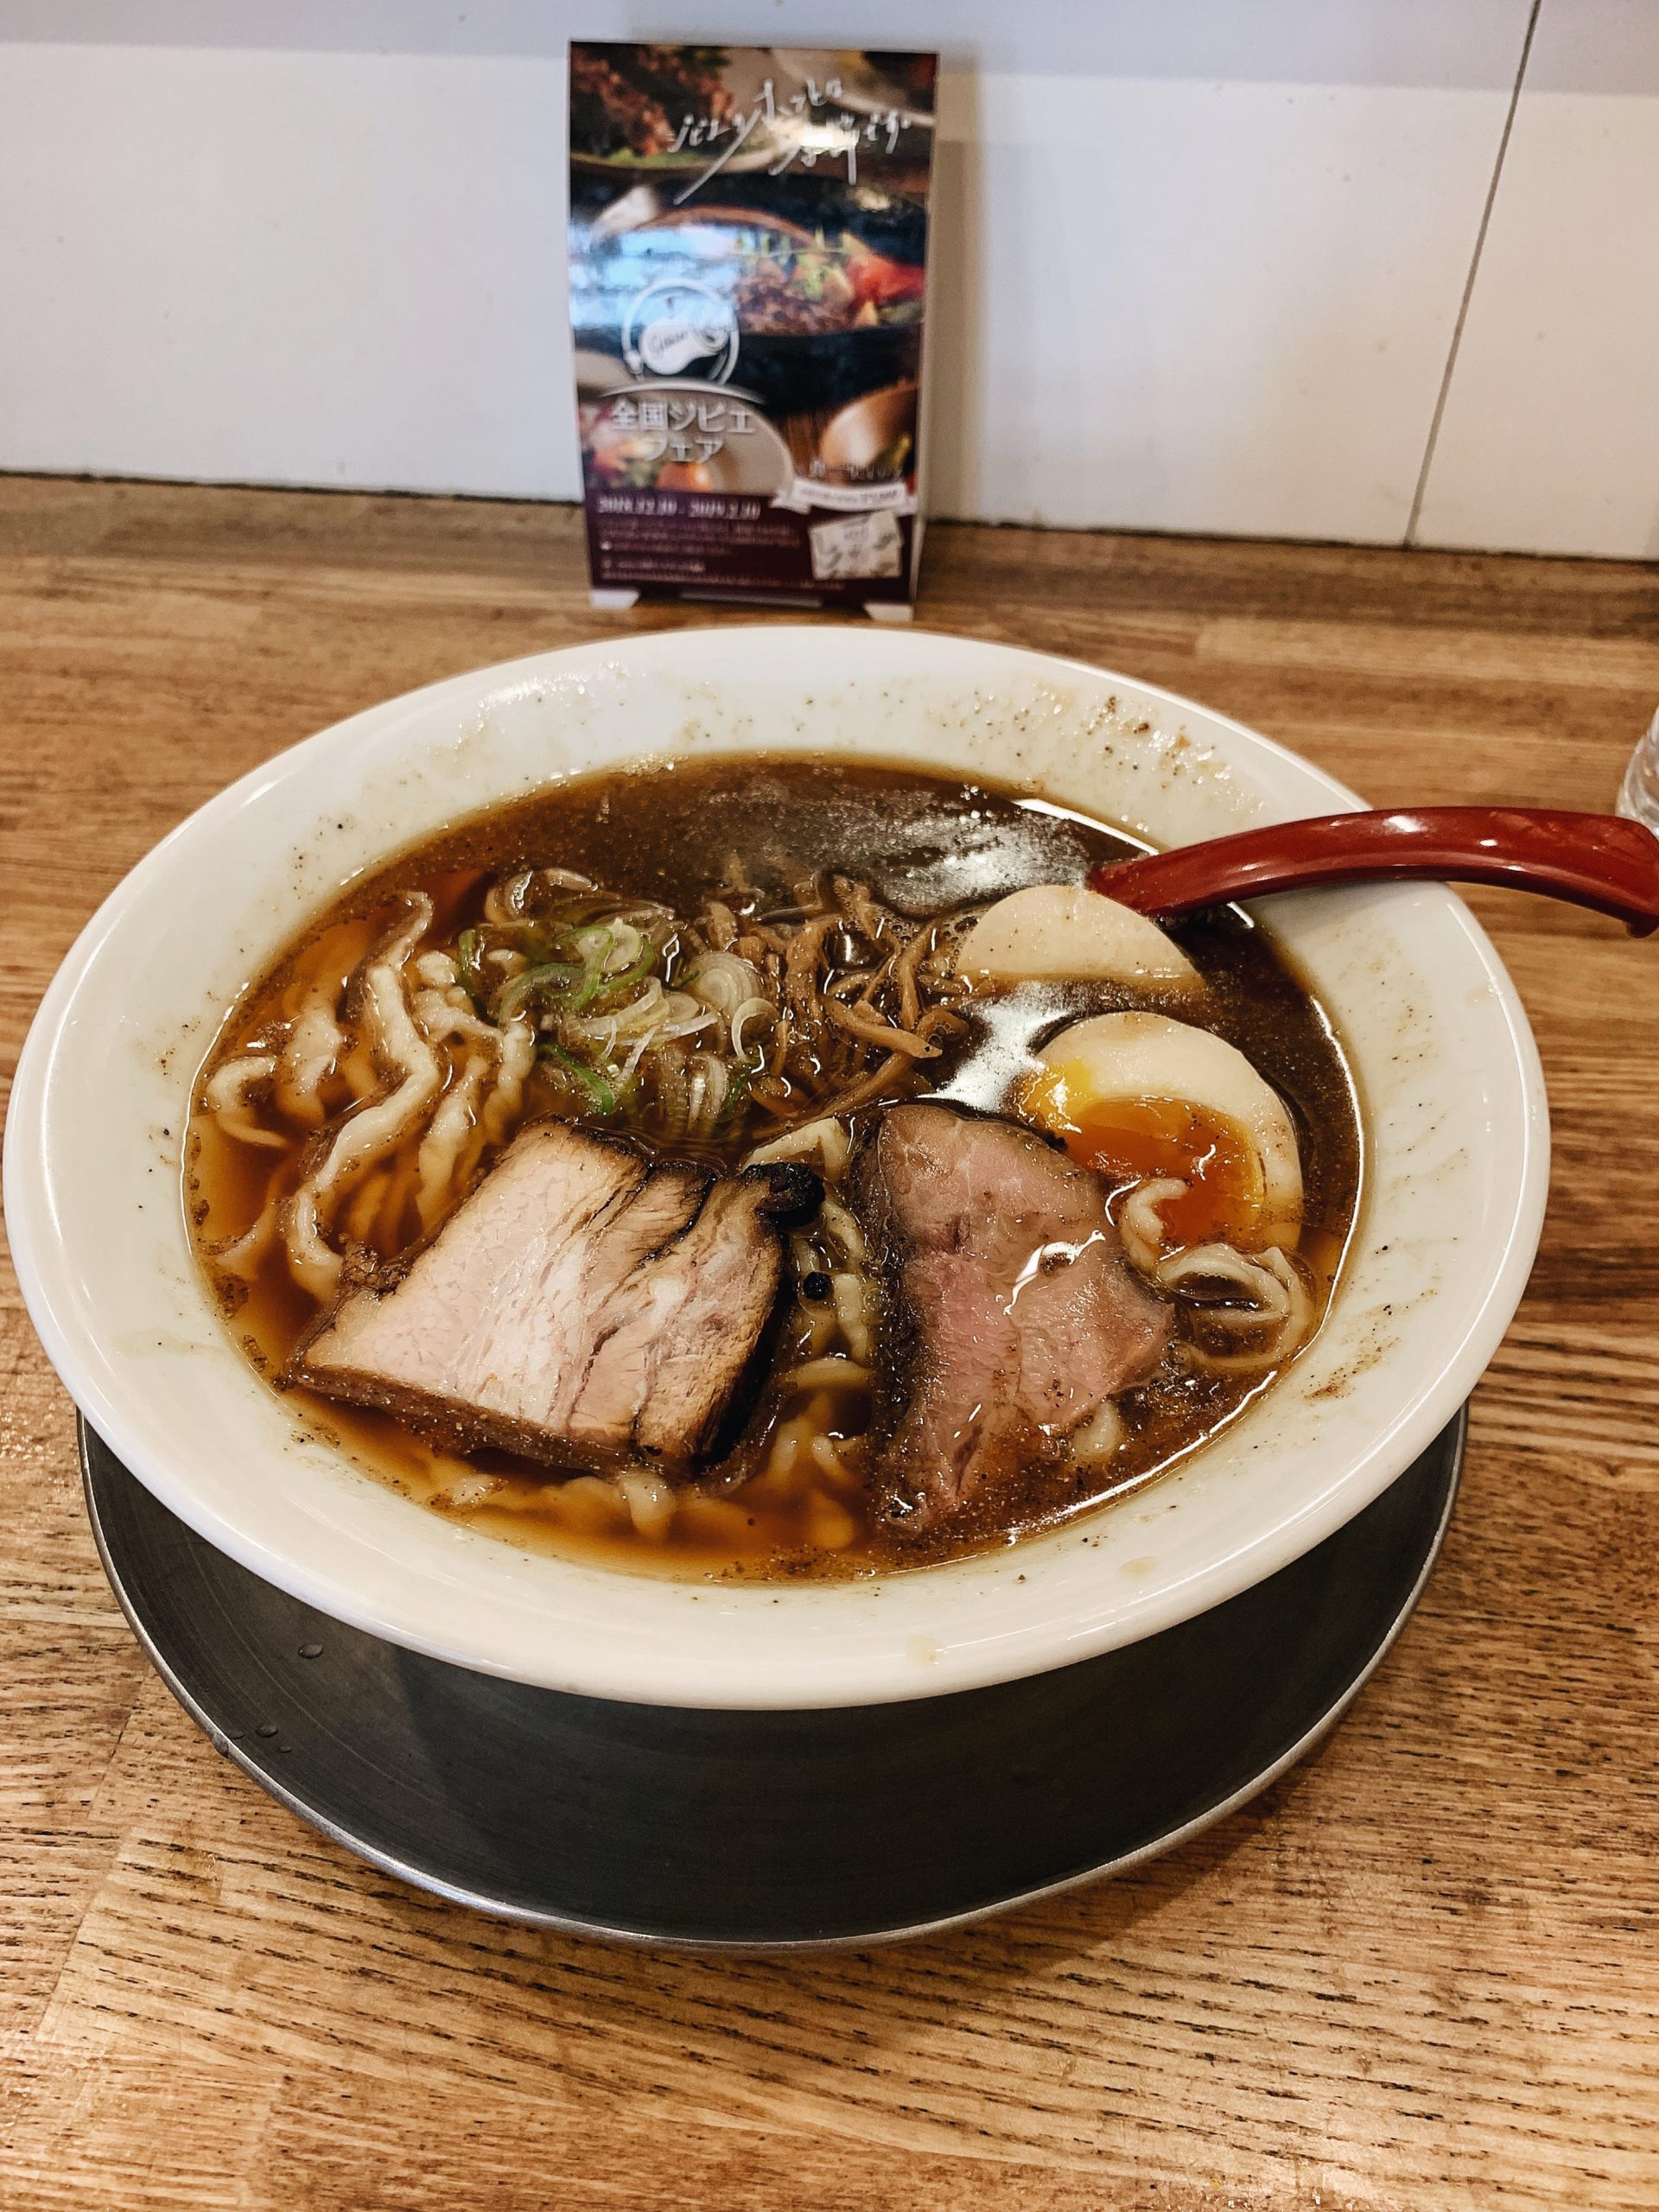 Bowl of ramen with pork slices and boiled egg sliced in half